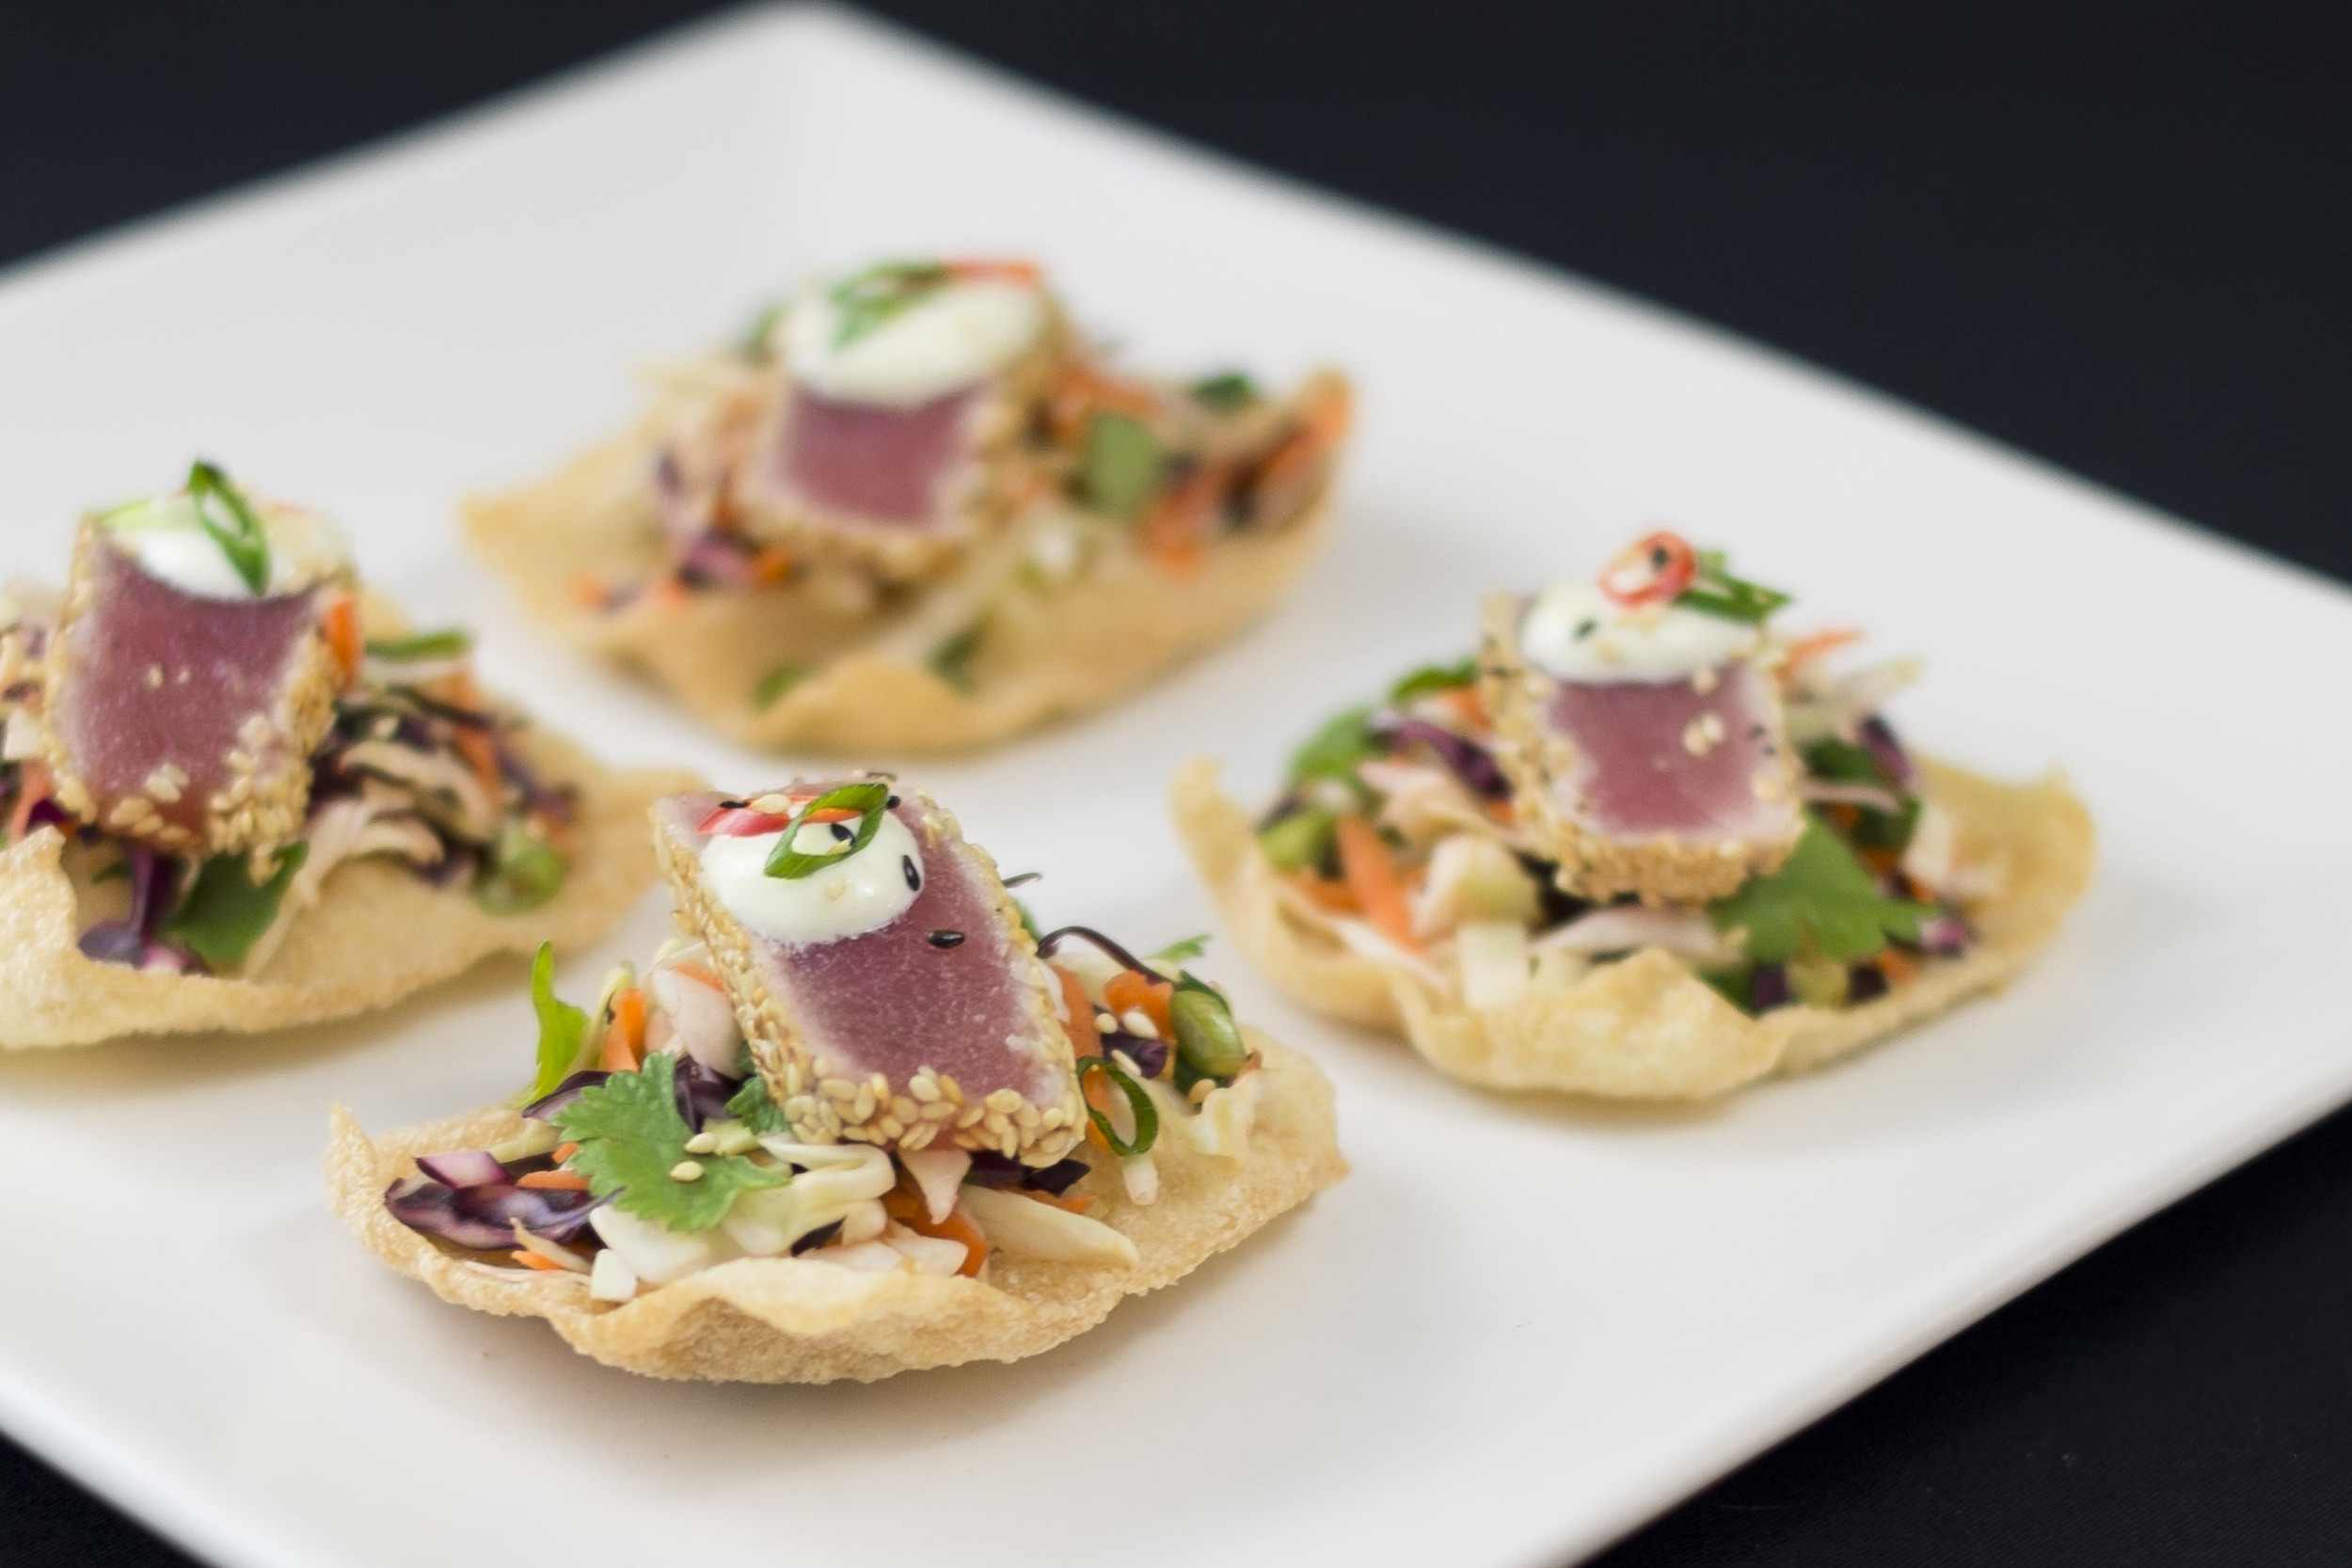 Seared Ahi Tuna on a Wonton Crisp.jpg